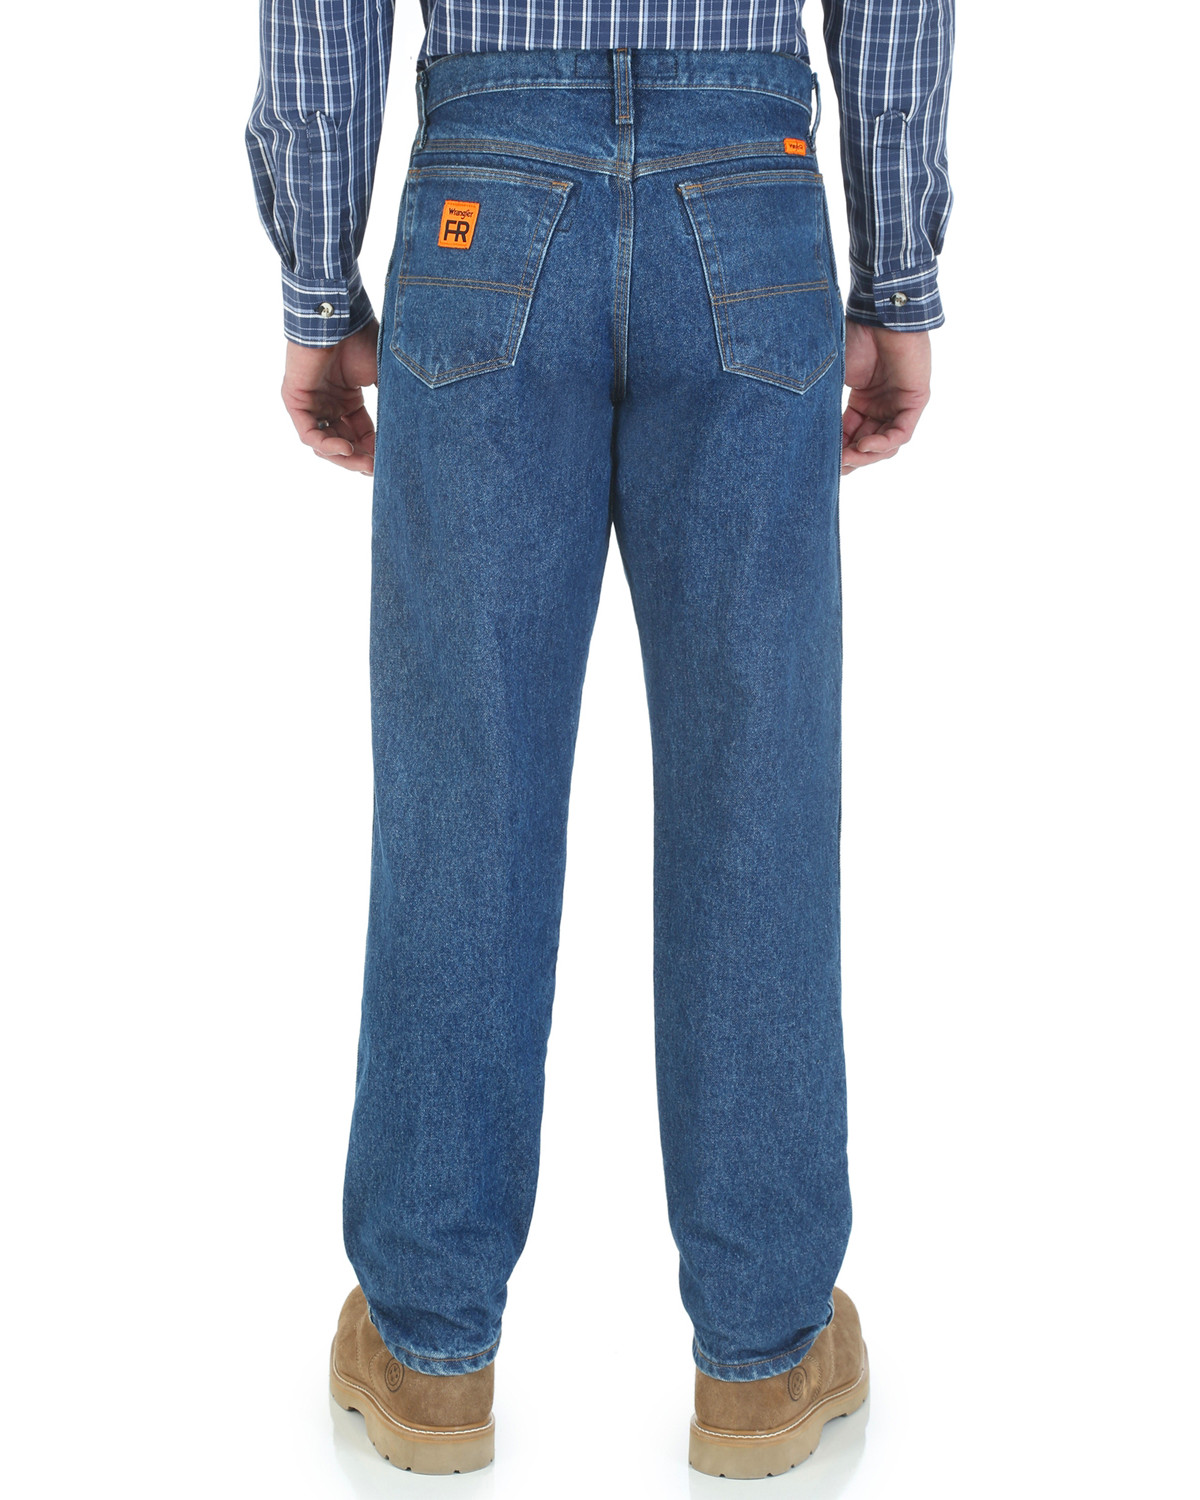 15341bee Zoomed Image Wrangler Men's Flame Resistant Relaxed Fit Jeans , Indigo,  hi-res. Zoomed Image ...